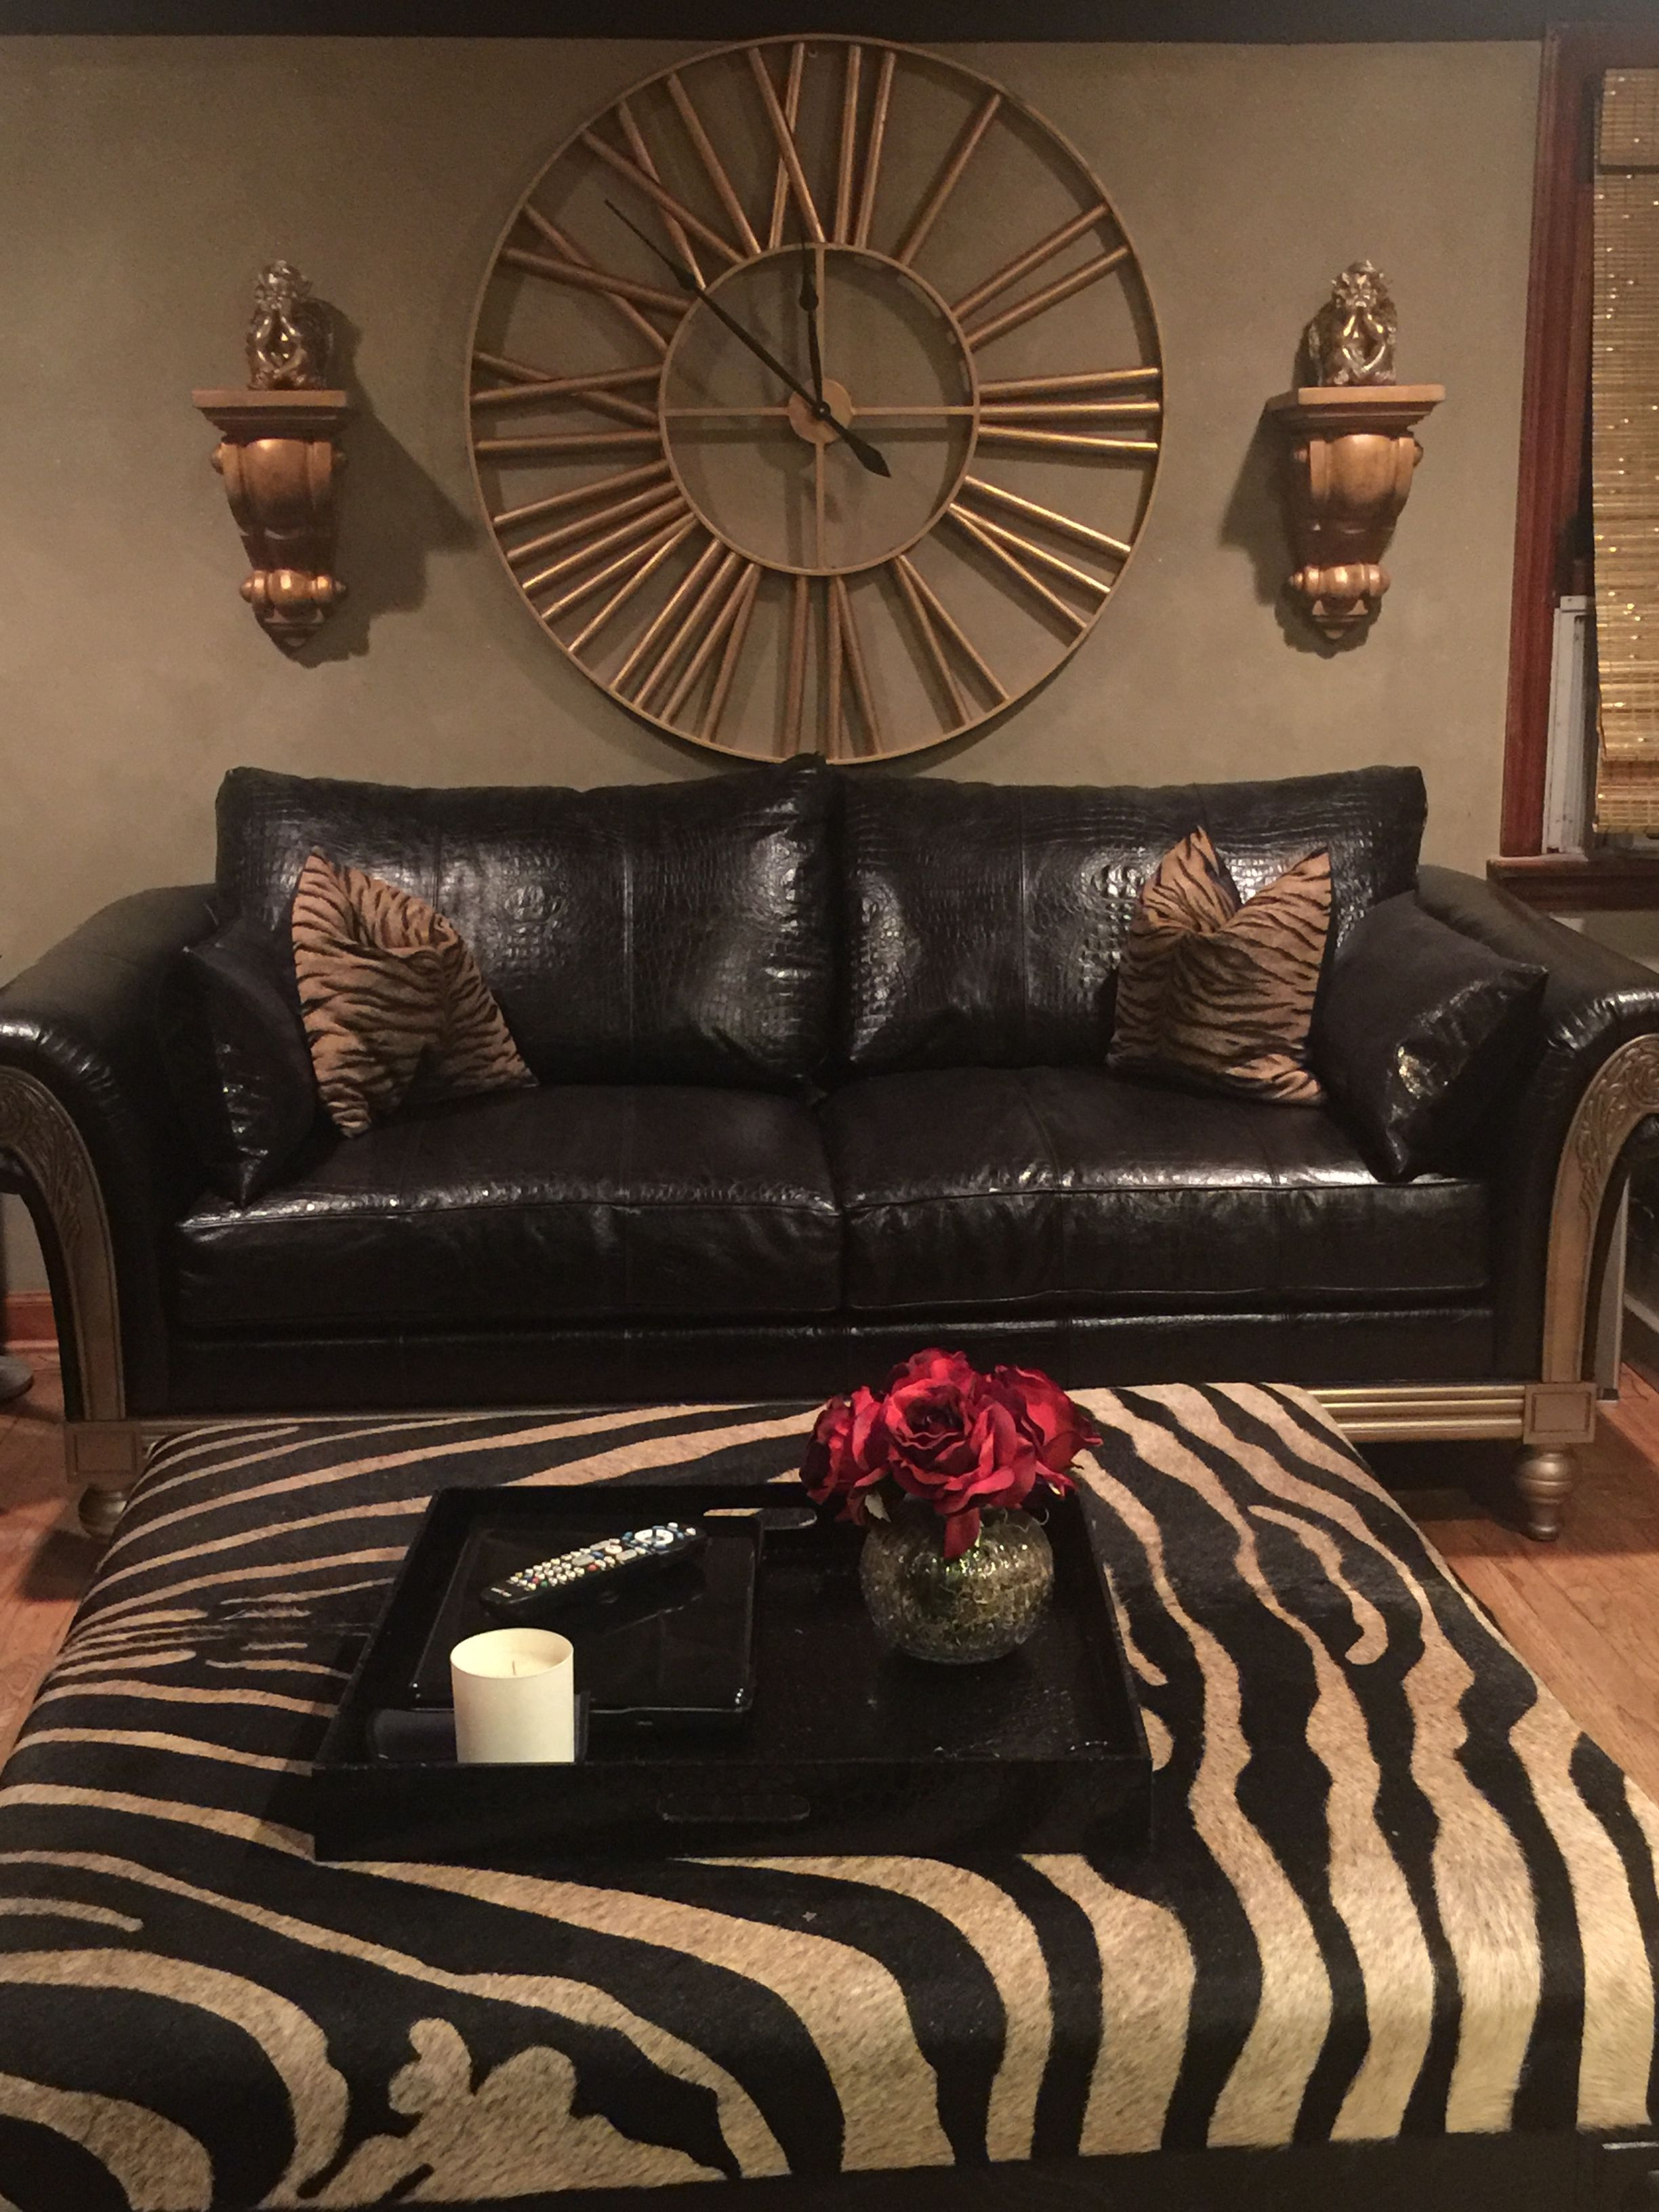 Baby jasper bed brackets - Gold Clock Wall Brackets With Sitting Angels Sofa In Jasper Black Leather With Silver